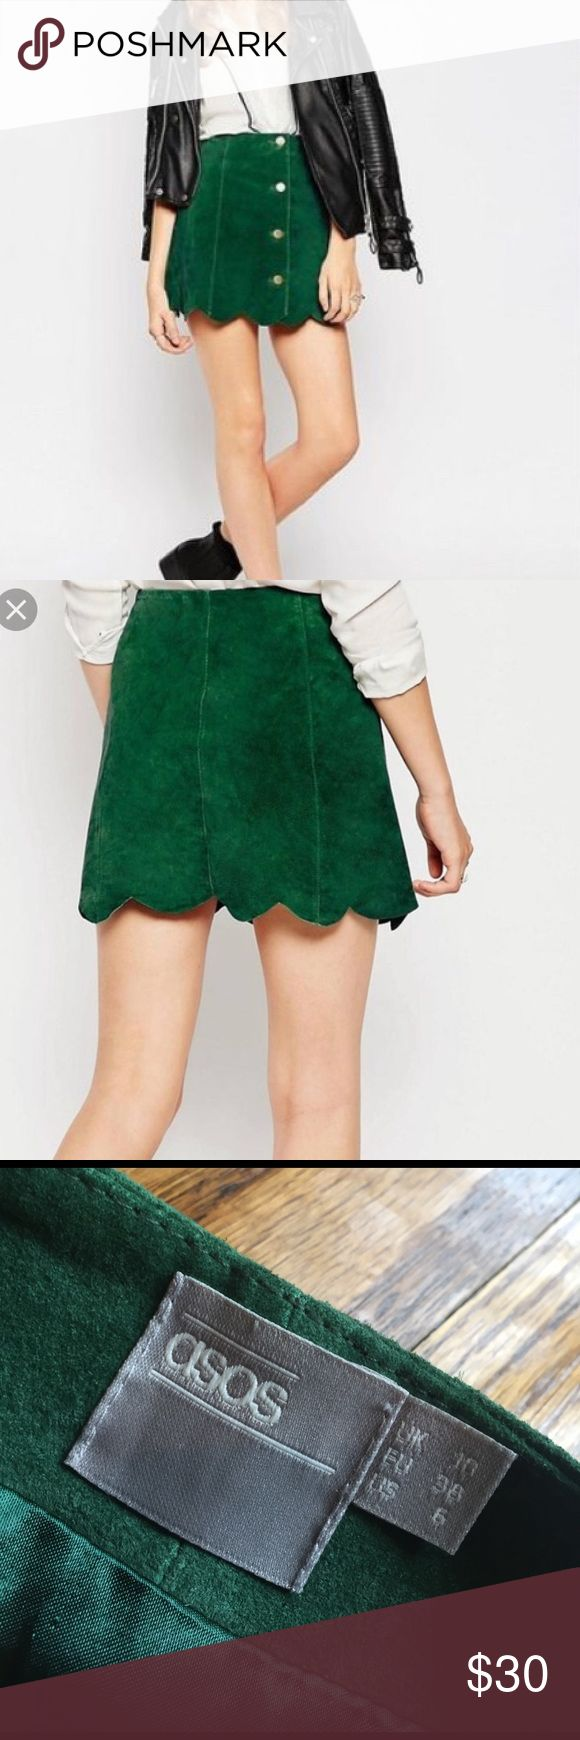 """Asos green suede scalloped skirt Perfect condition, worn once, 15.5"""" long, gold button through buttons on front ASOS Skirts Mini"""